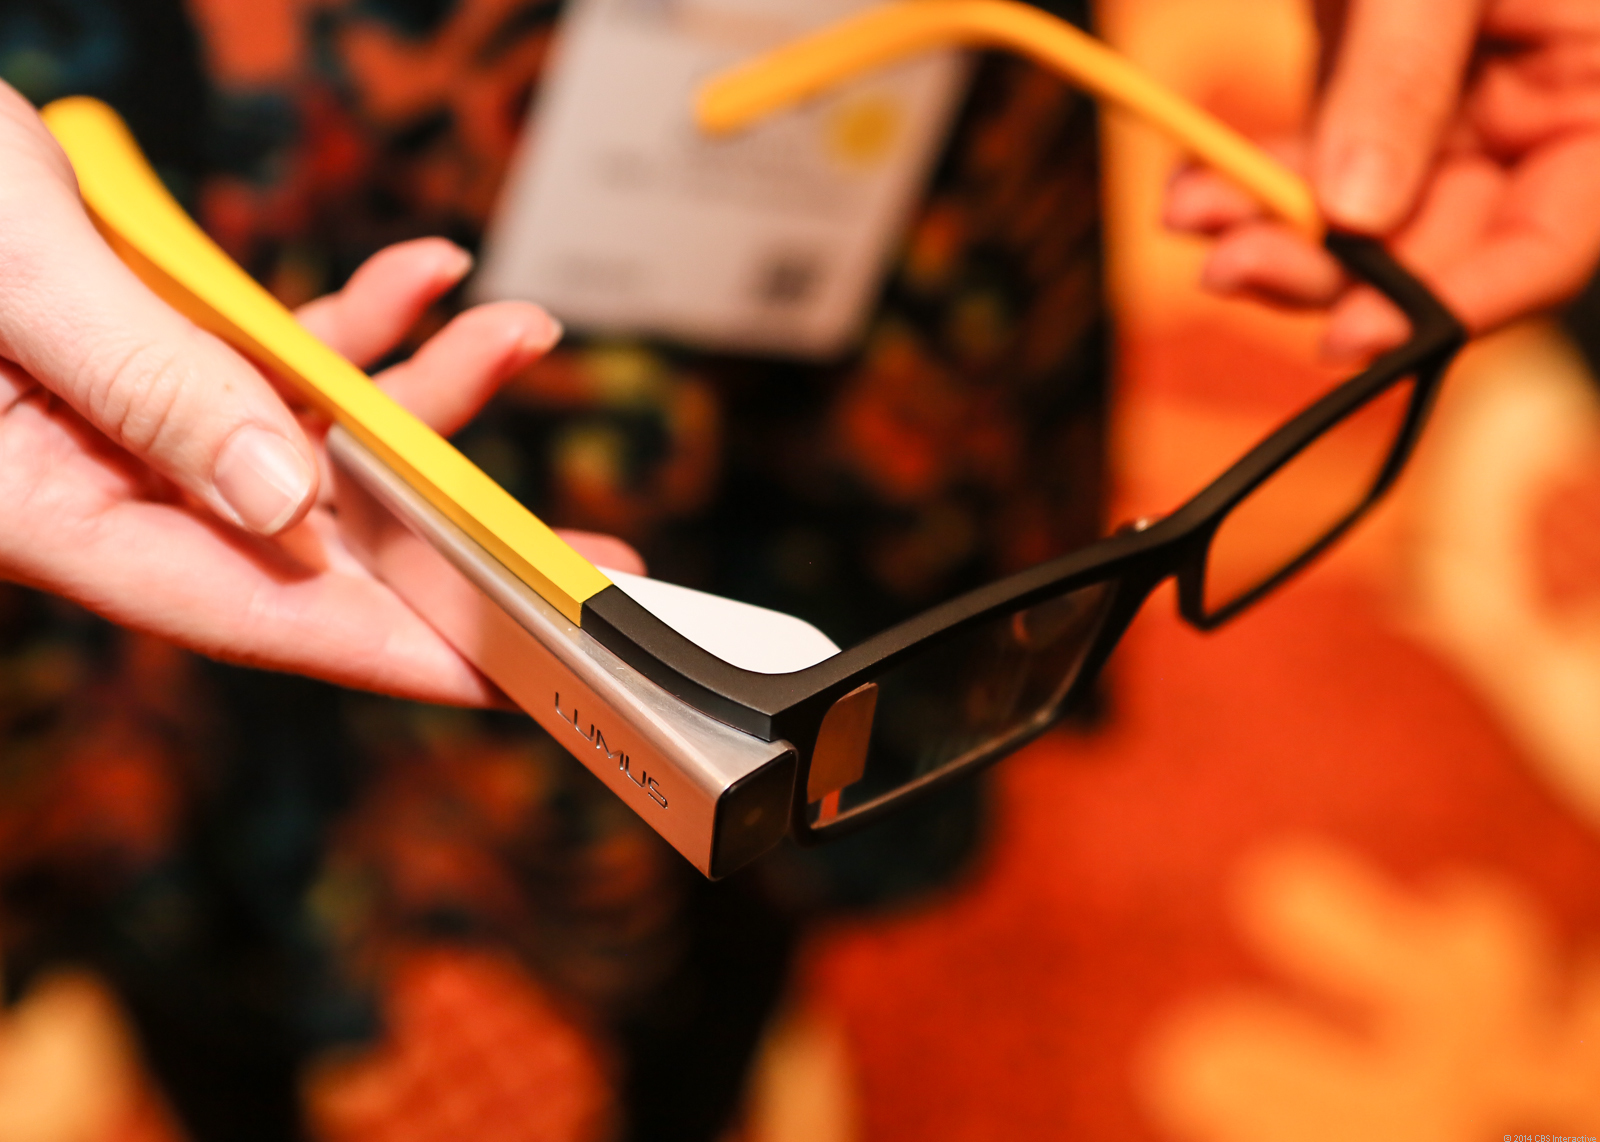 Smartglasses that put optics first